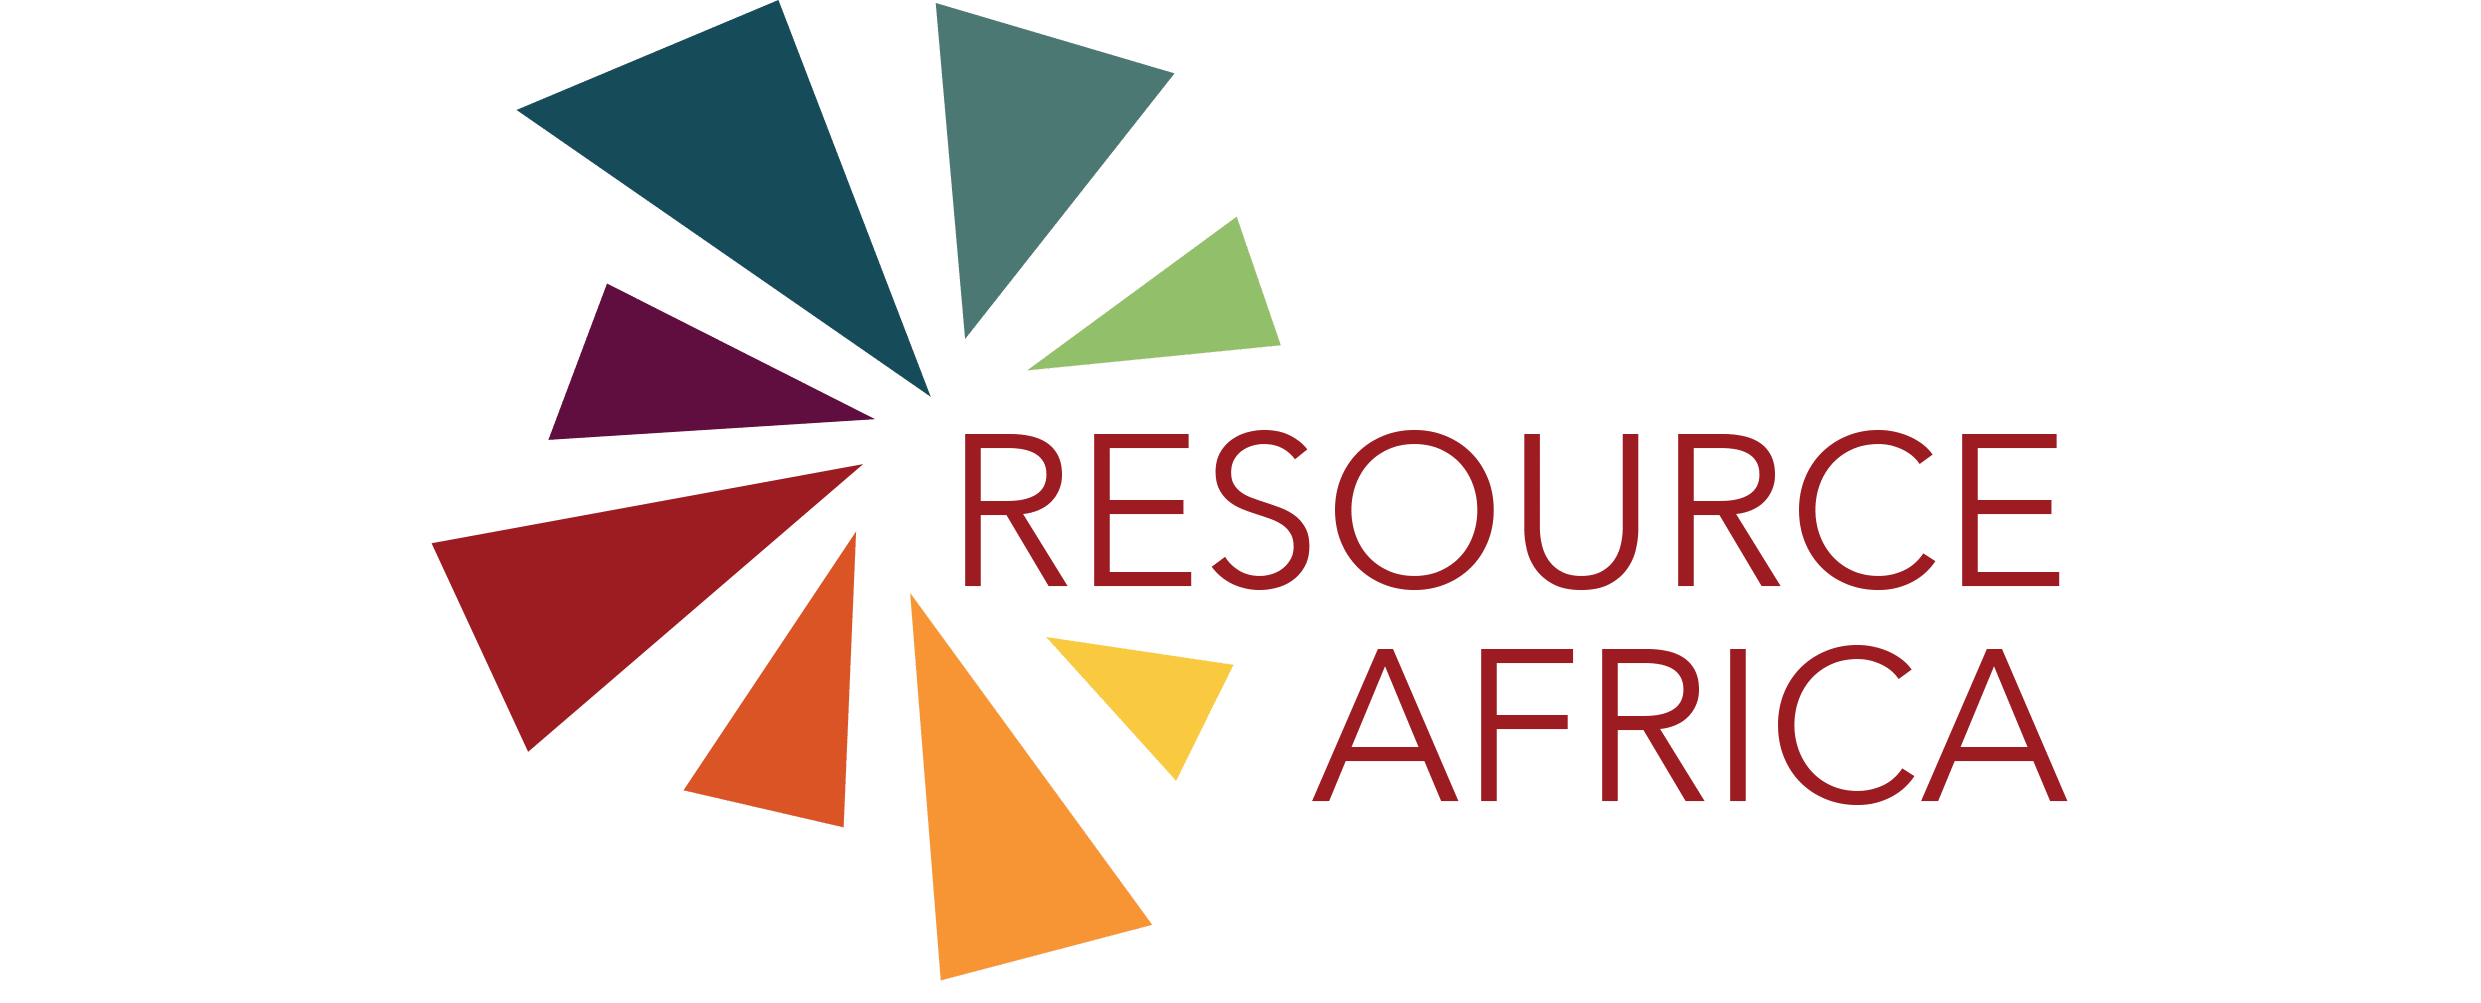 resource africa logo